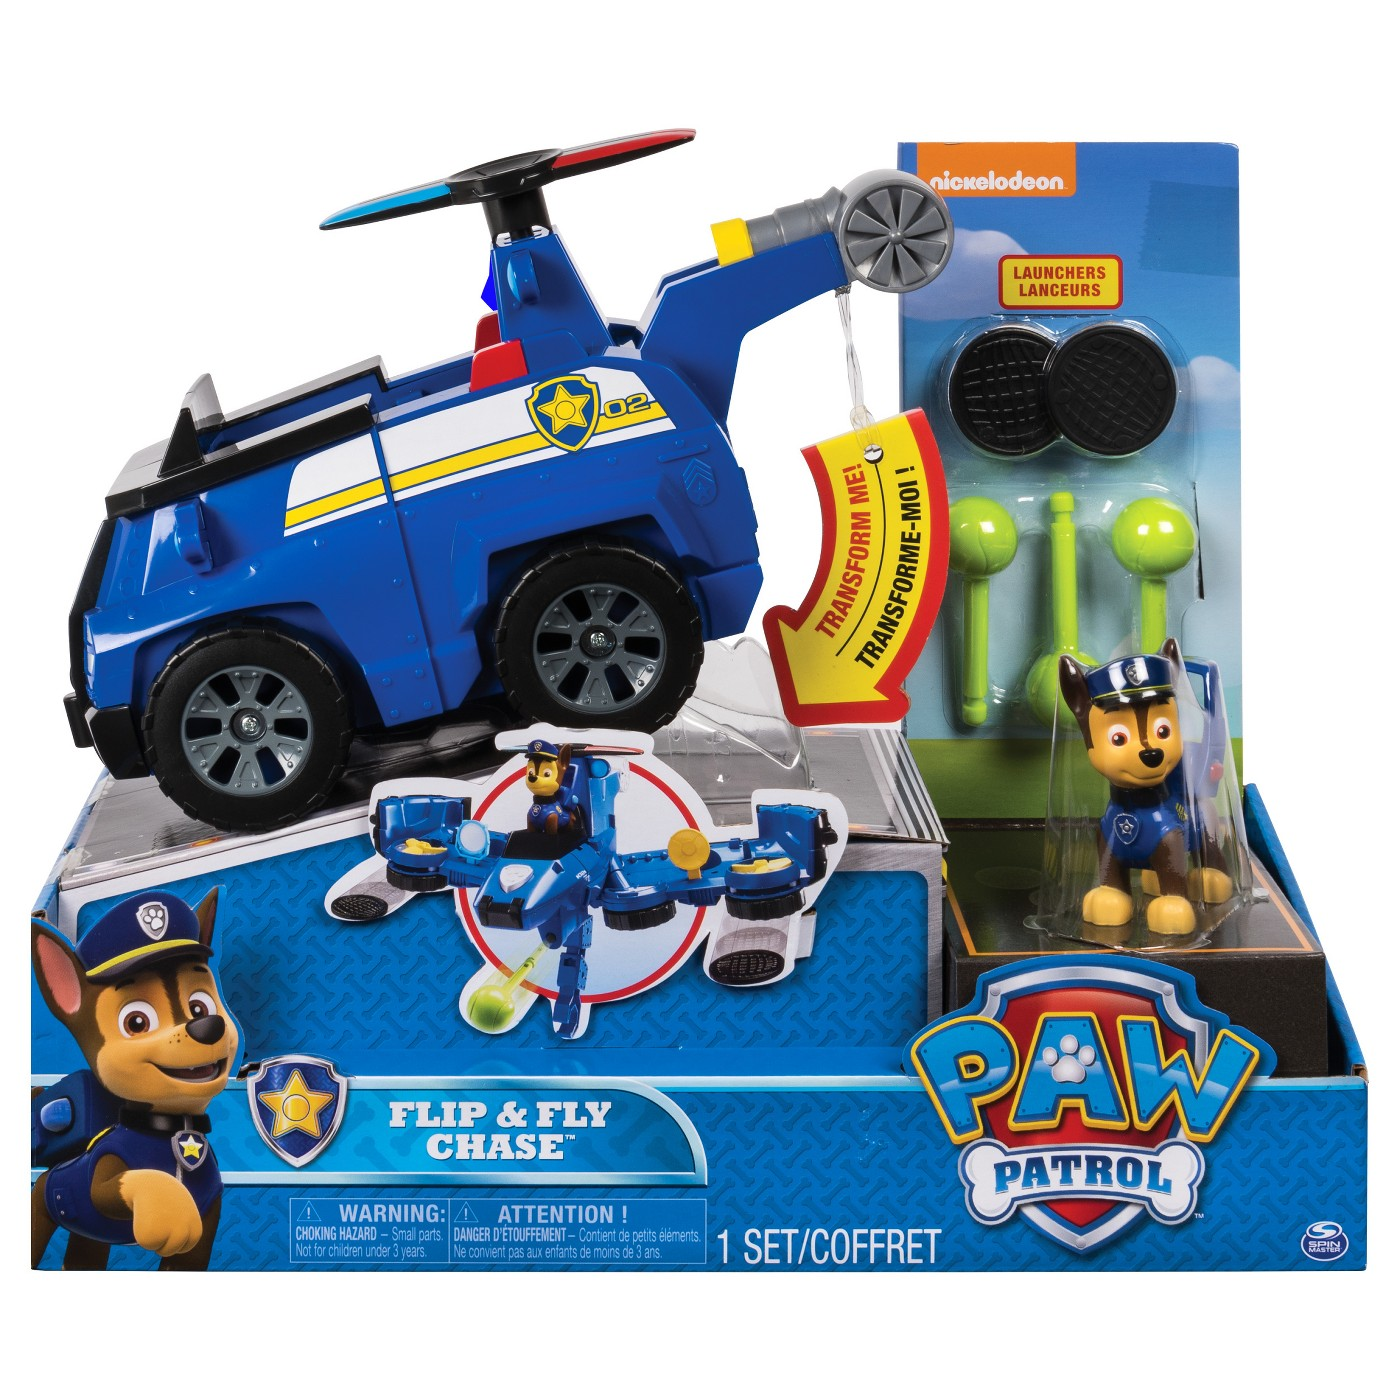 Paw Patrol Flip and Fly Vehicle Assortment - Chase - image 1 of 9